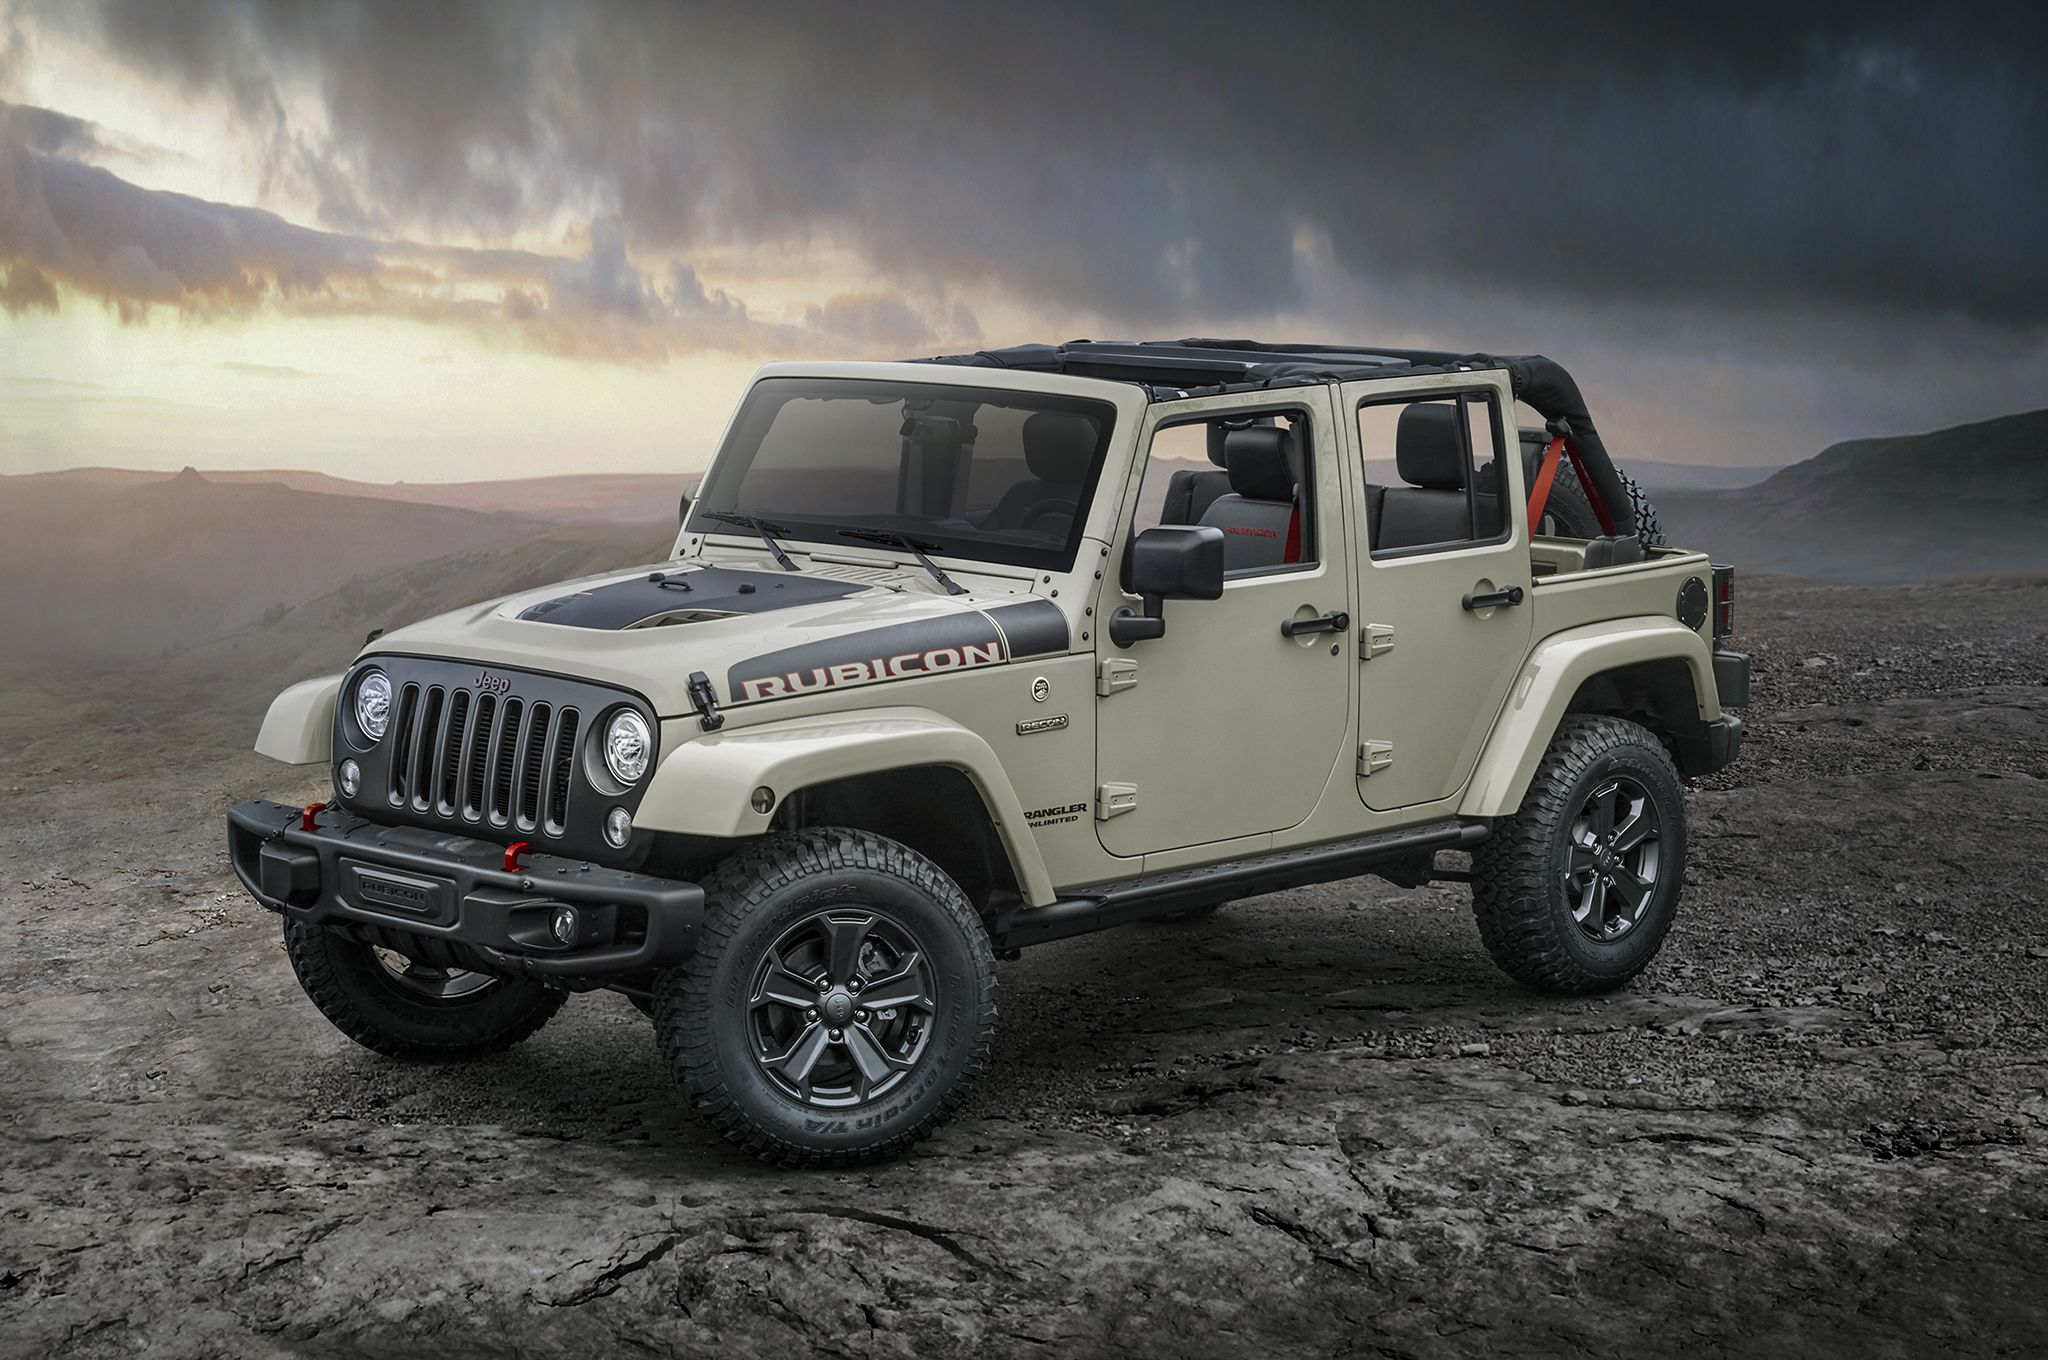 2017 Jeep Wrangler Rubicon Recon Is The Most Off Road Ready Jk